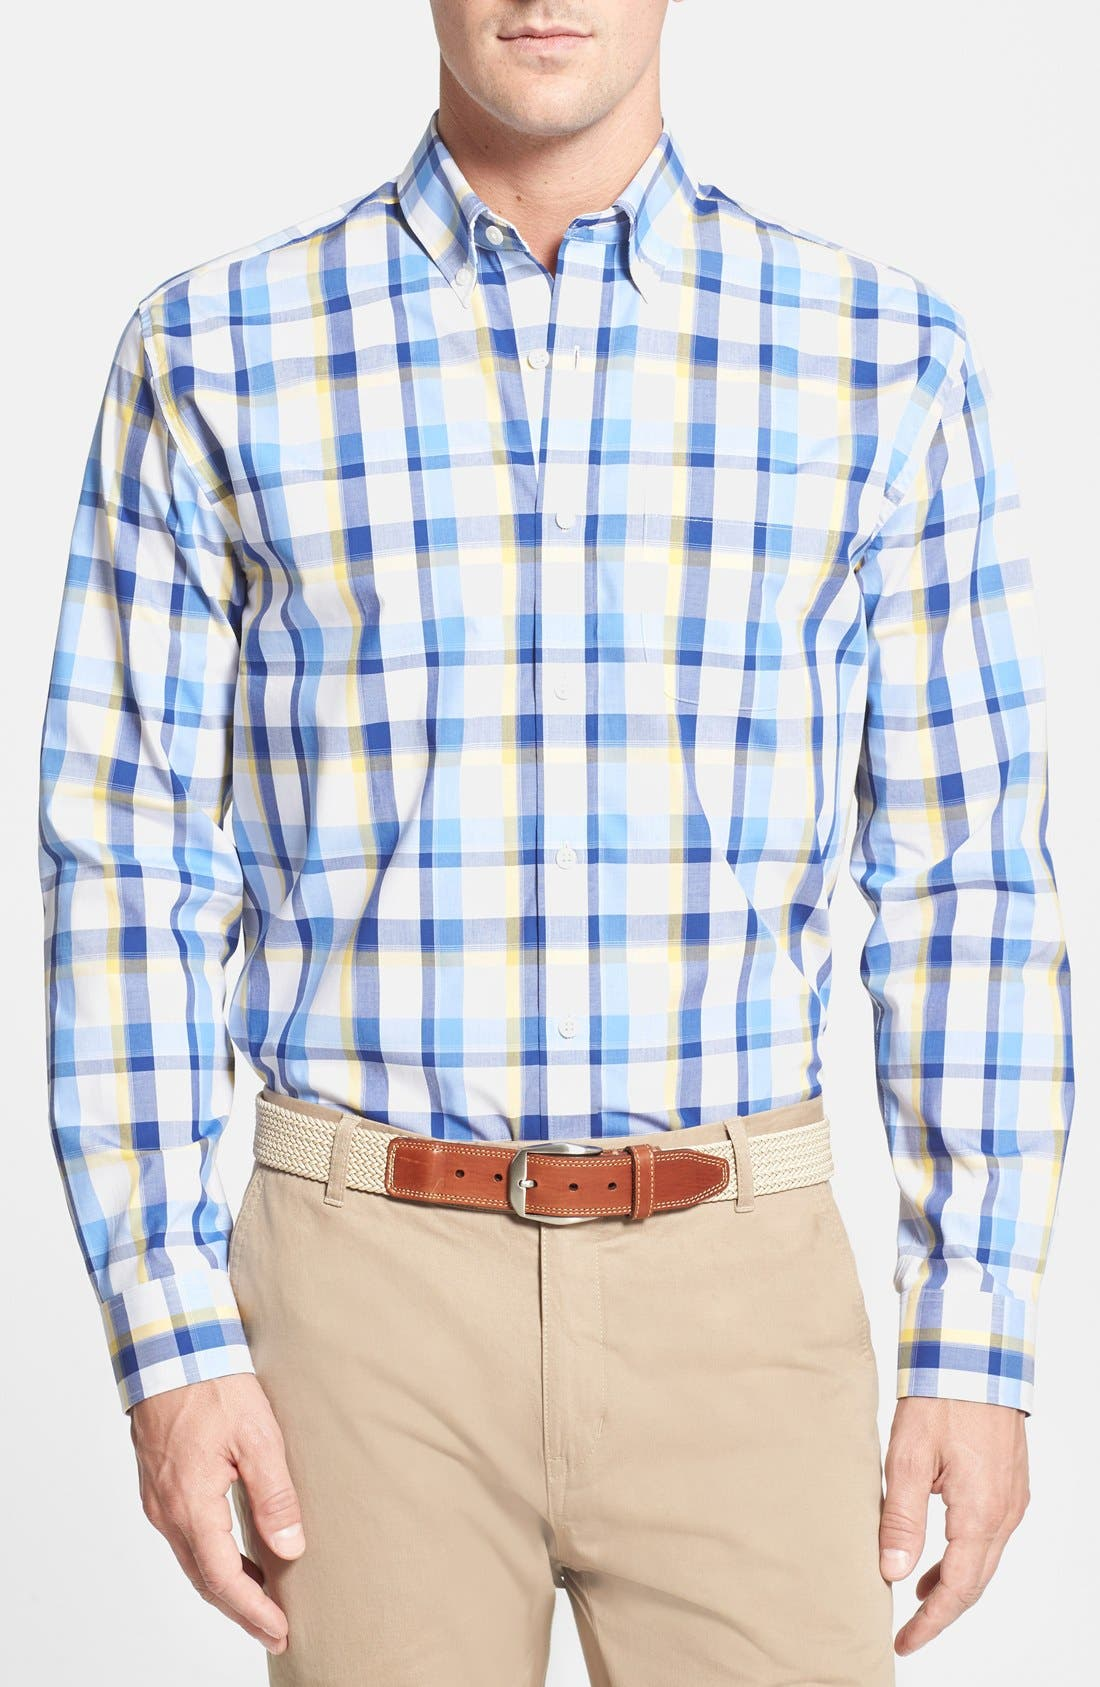 Main Image - Cutter & Buck 'Pierce' Classic Fit Plaid Poplin Sport Shirt (Big & Tall)